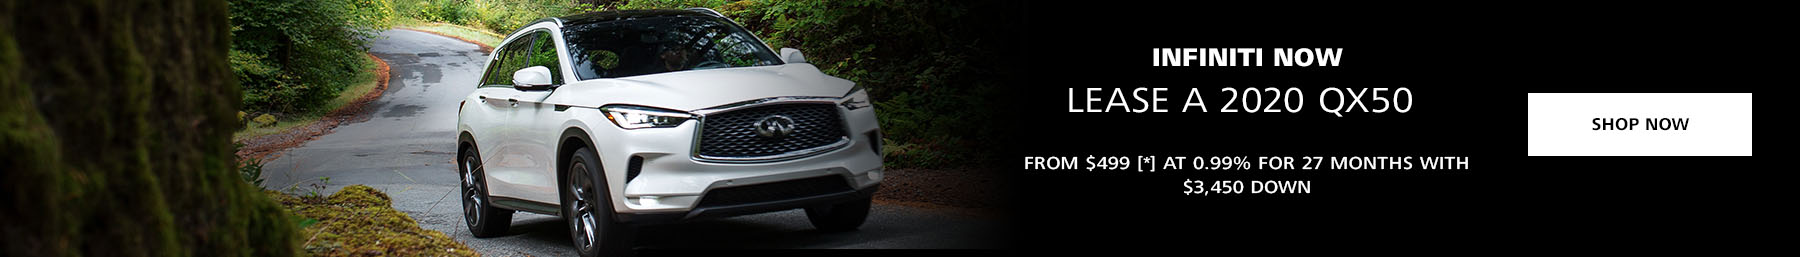 Infiniti Now July 2020 Incentive